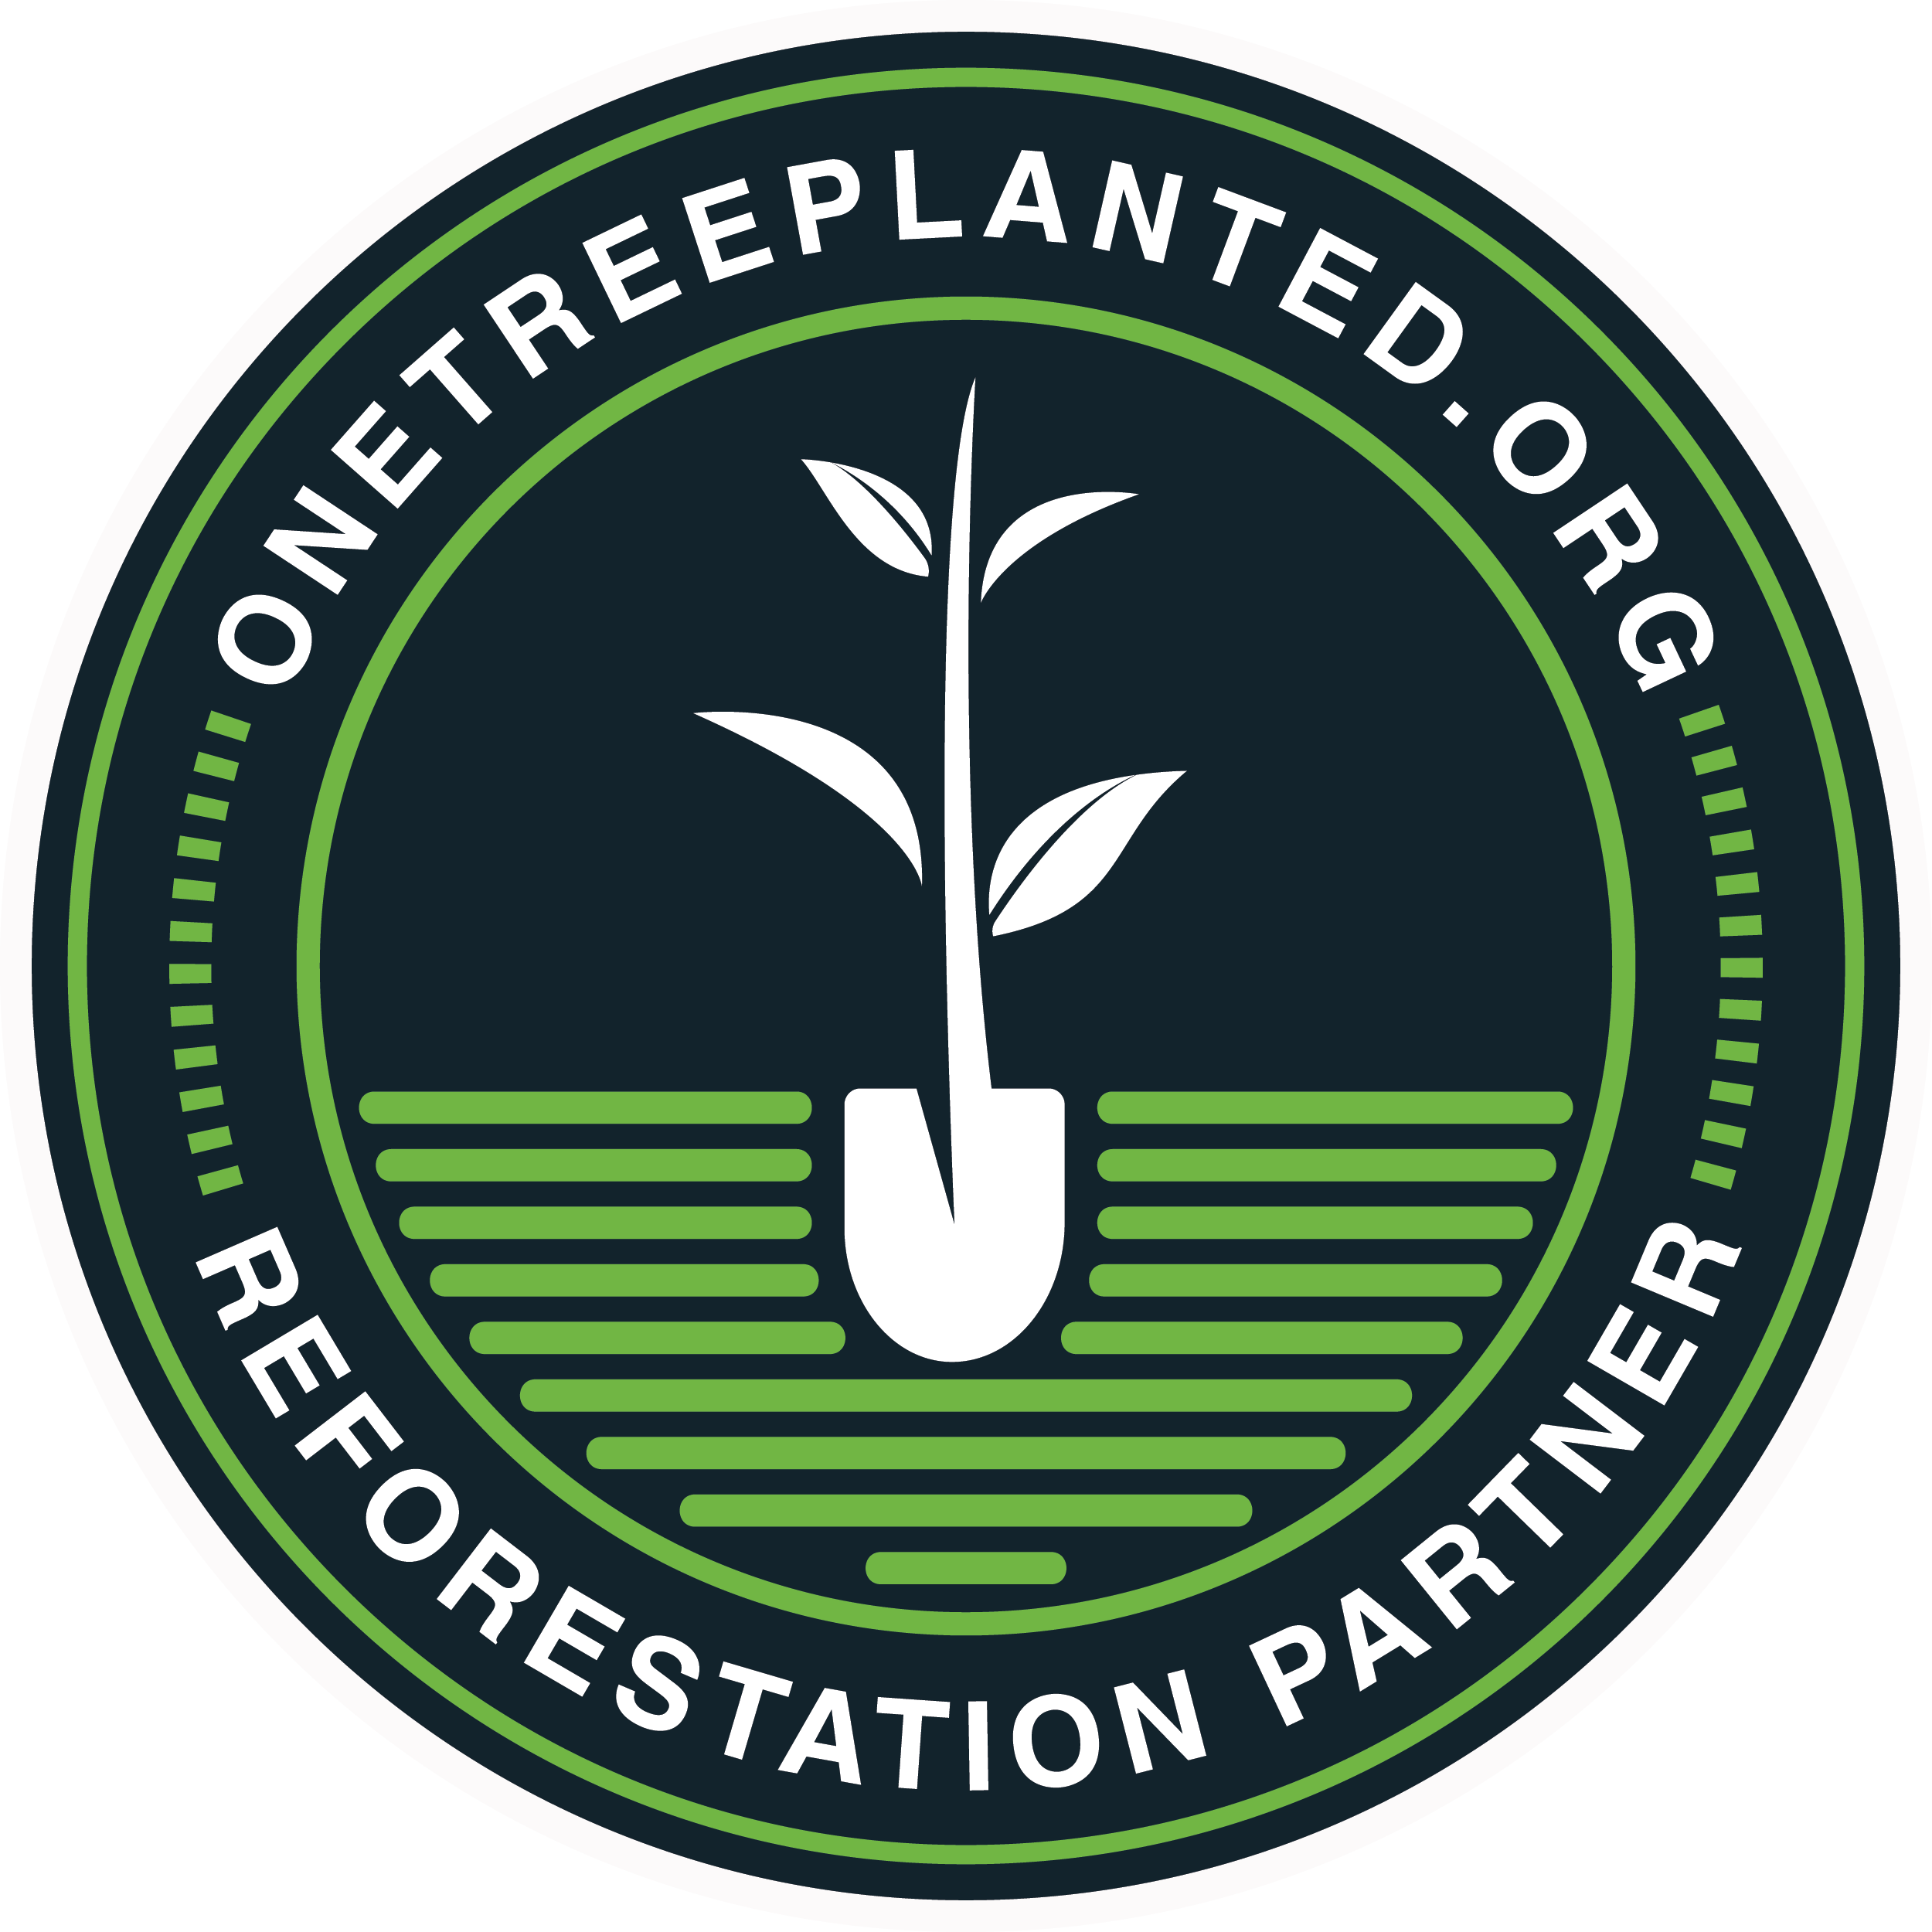 Proud partner of One Tree Planted